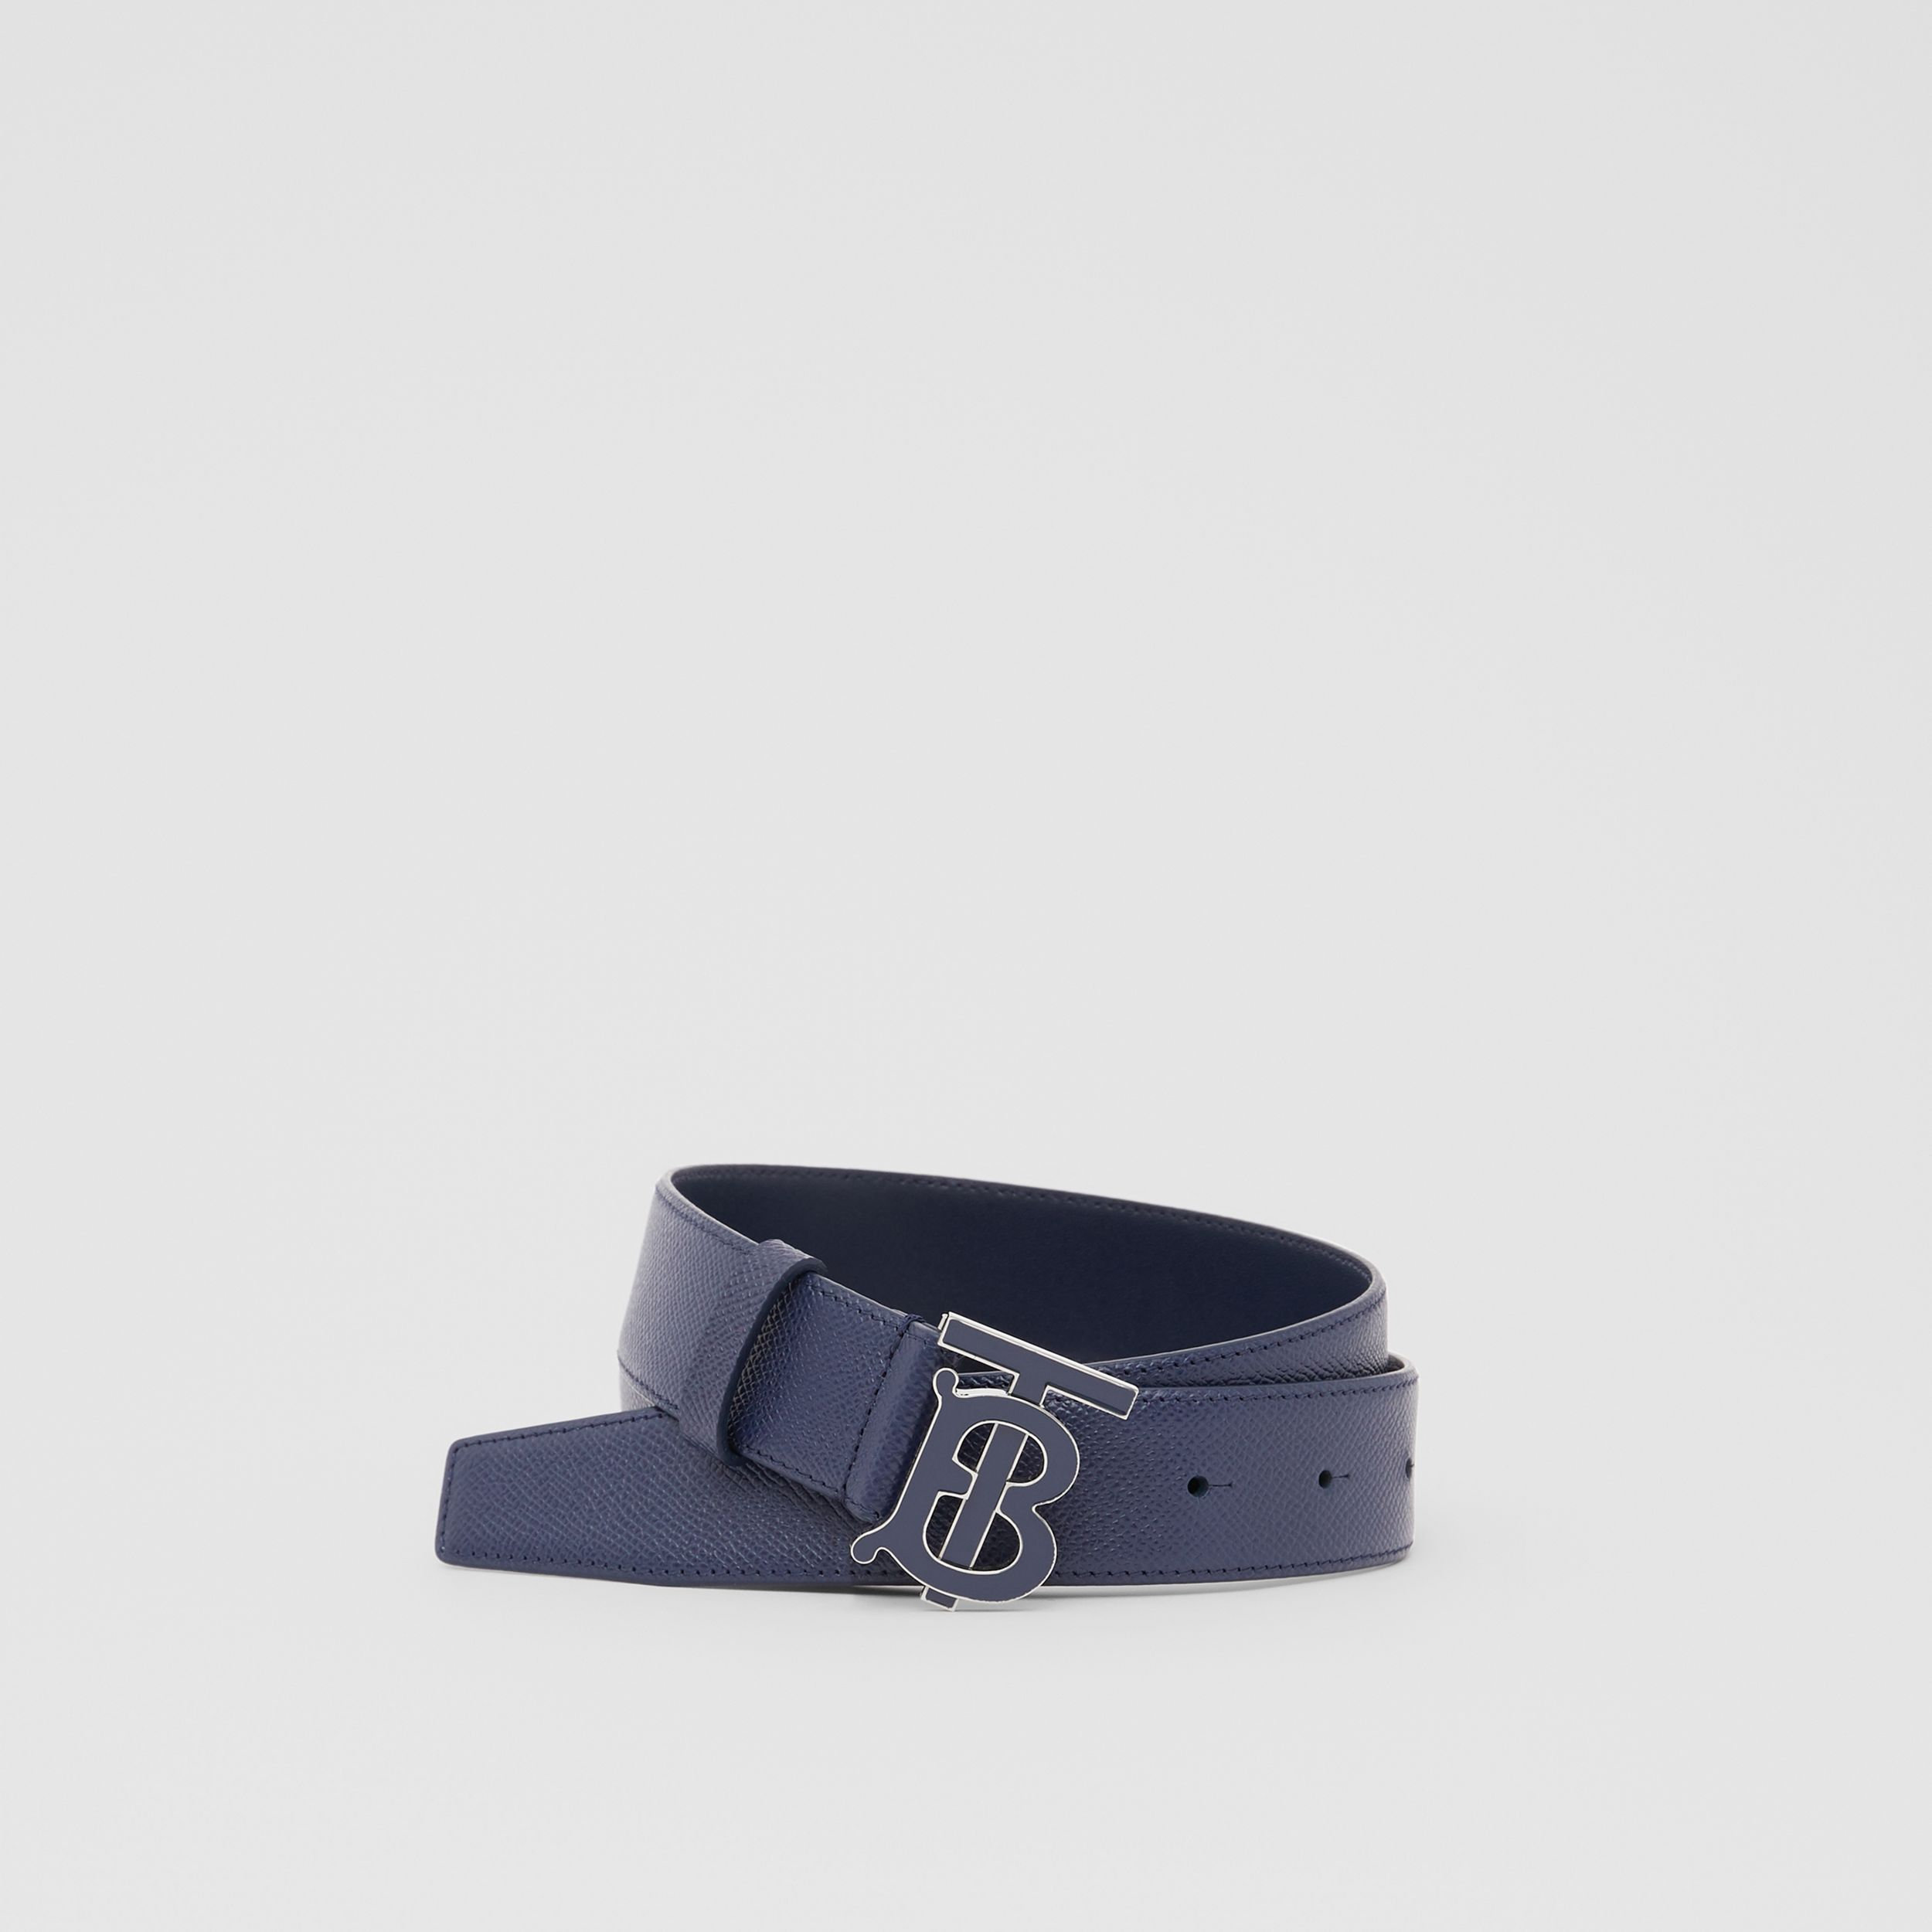 Monogram Motif Grainy Leather Belt in Navy - Men | Burberry Canada - 1